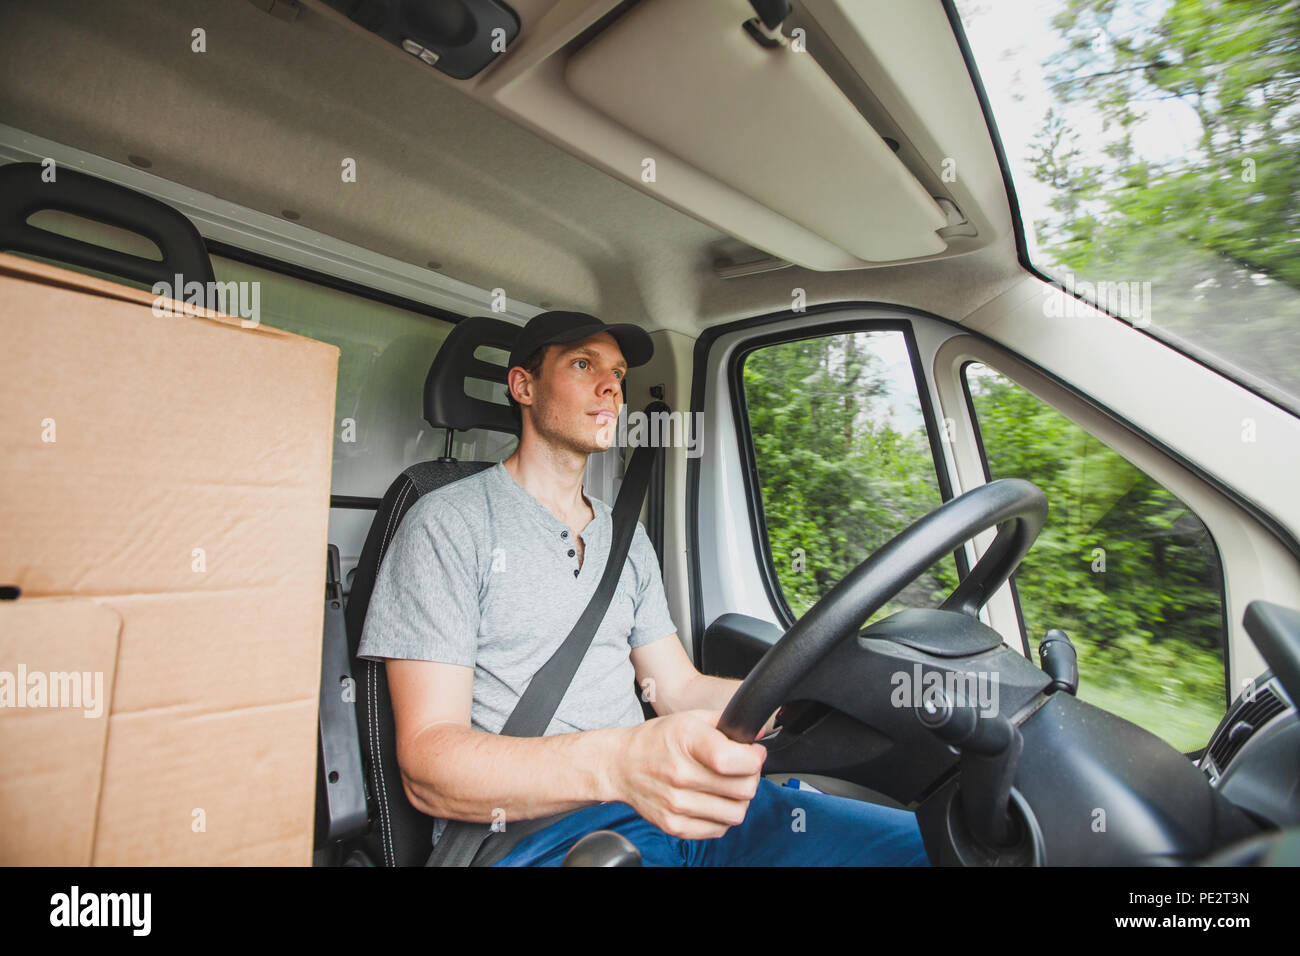 driver man driving delivery truck car vehicle, service of delivering